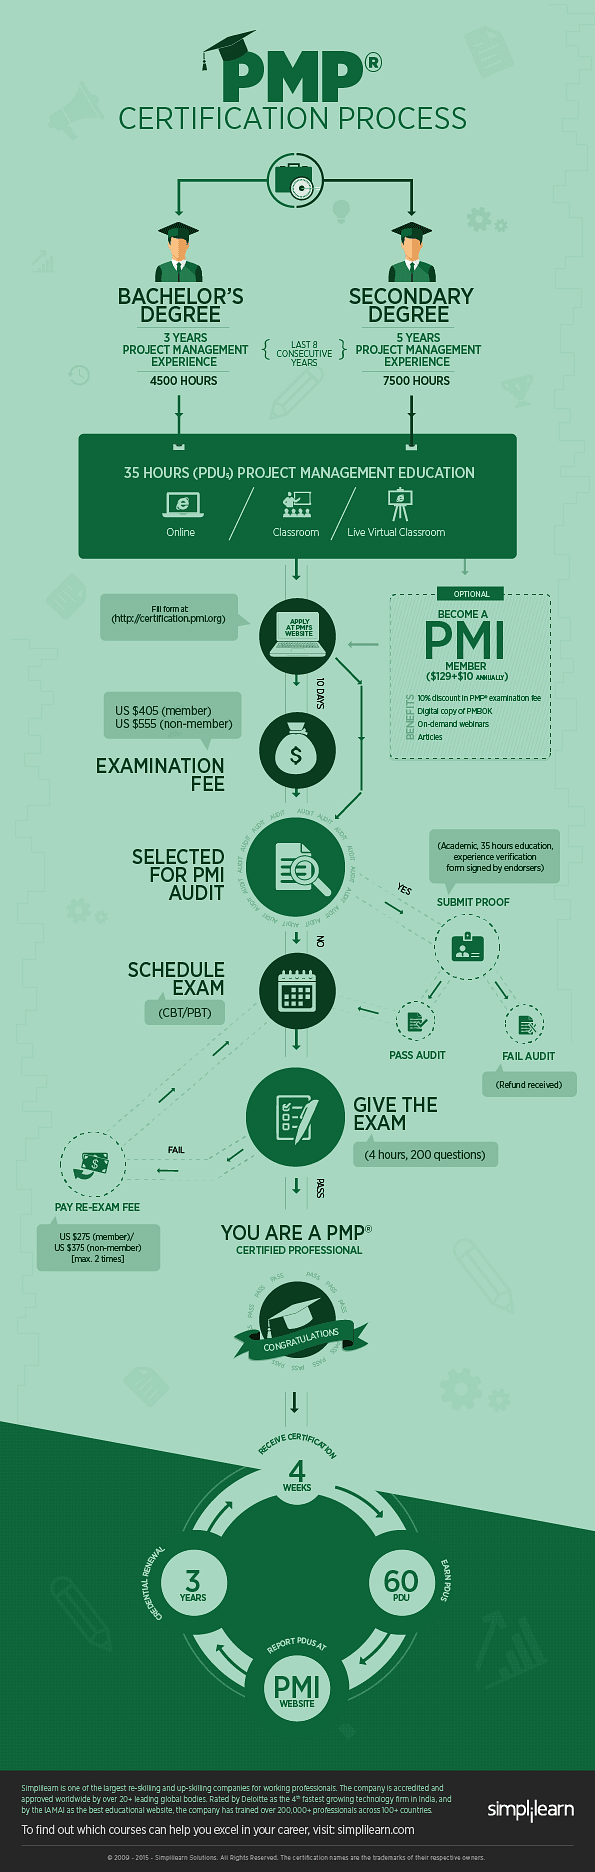 Roadmap to crack pmp certification process xflitez Gallery